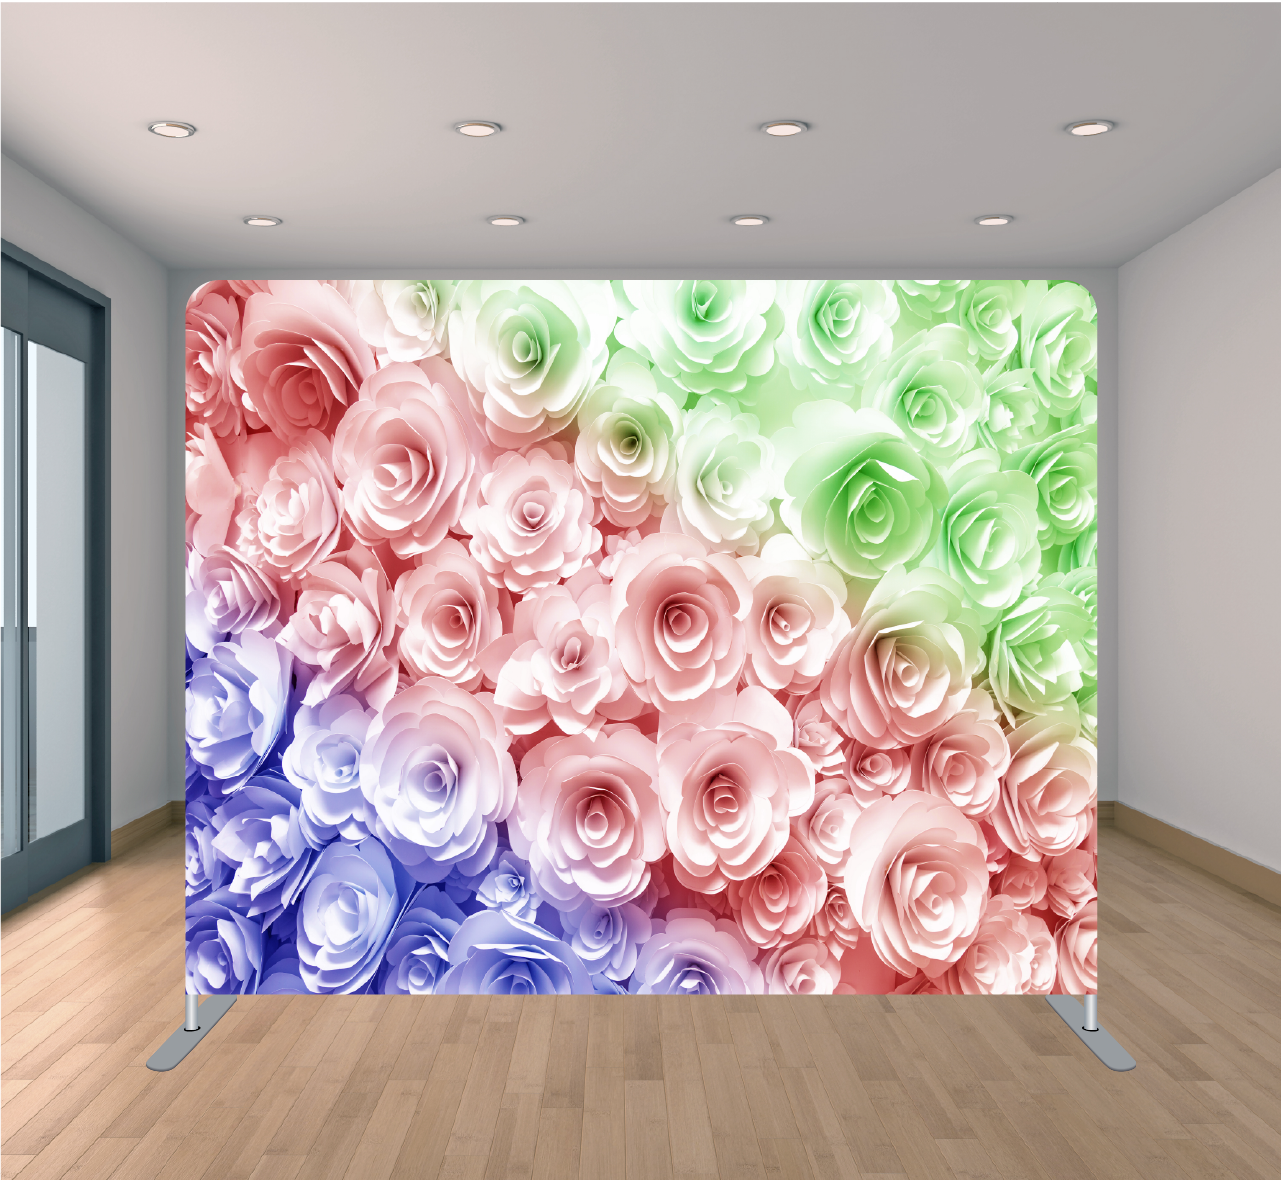 8X8ft Pillowcase Tension Backdrop- Rainbow Floral